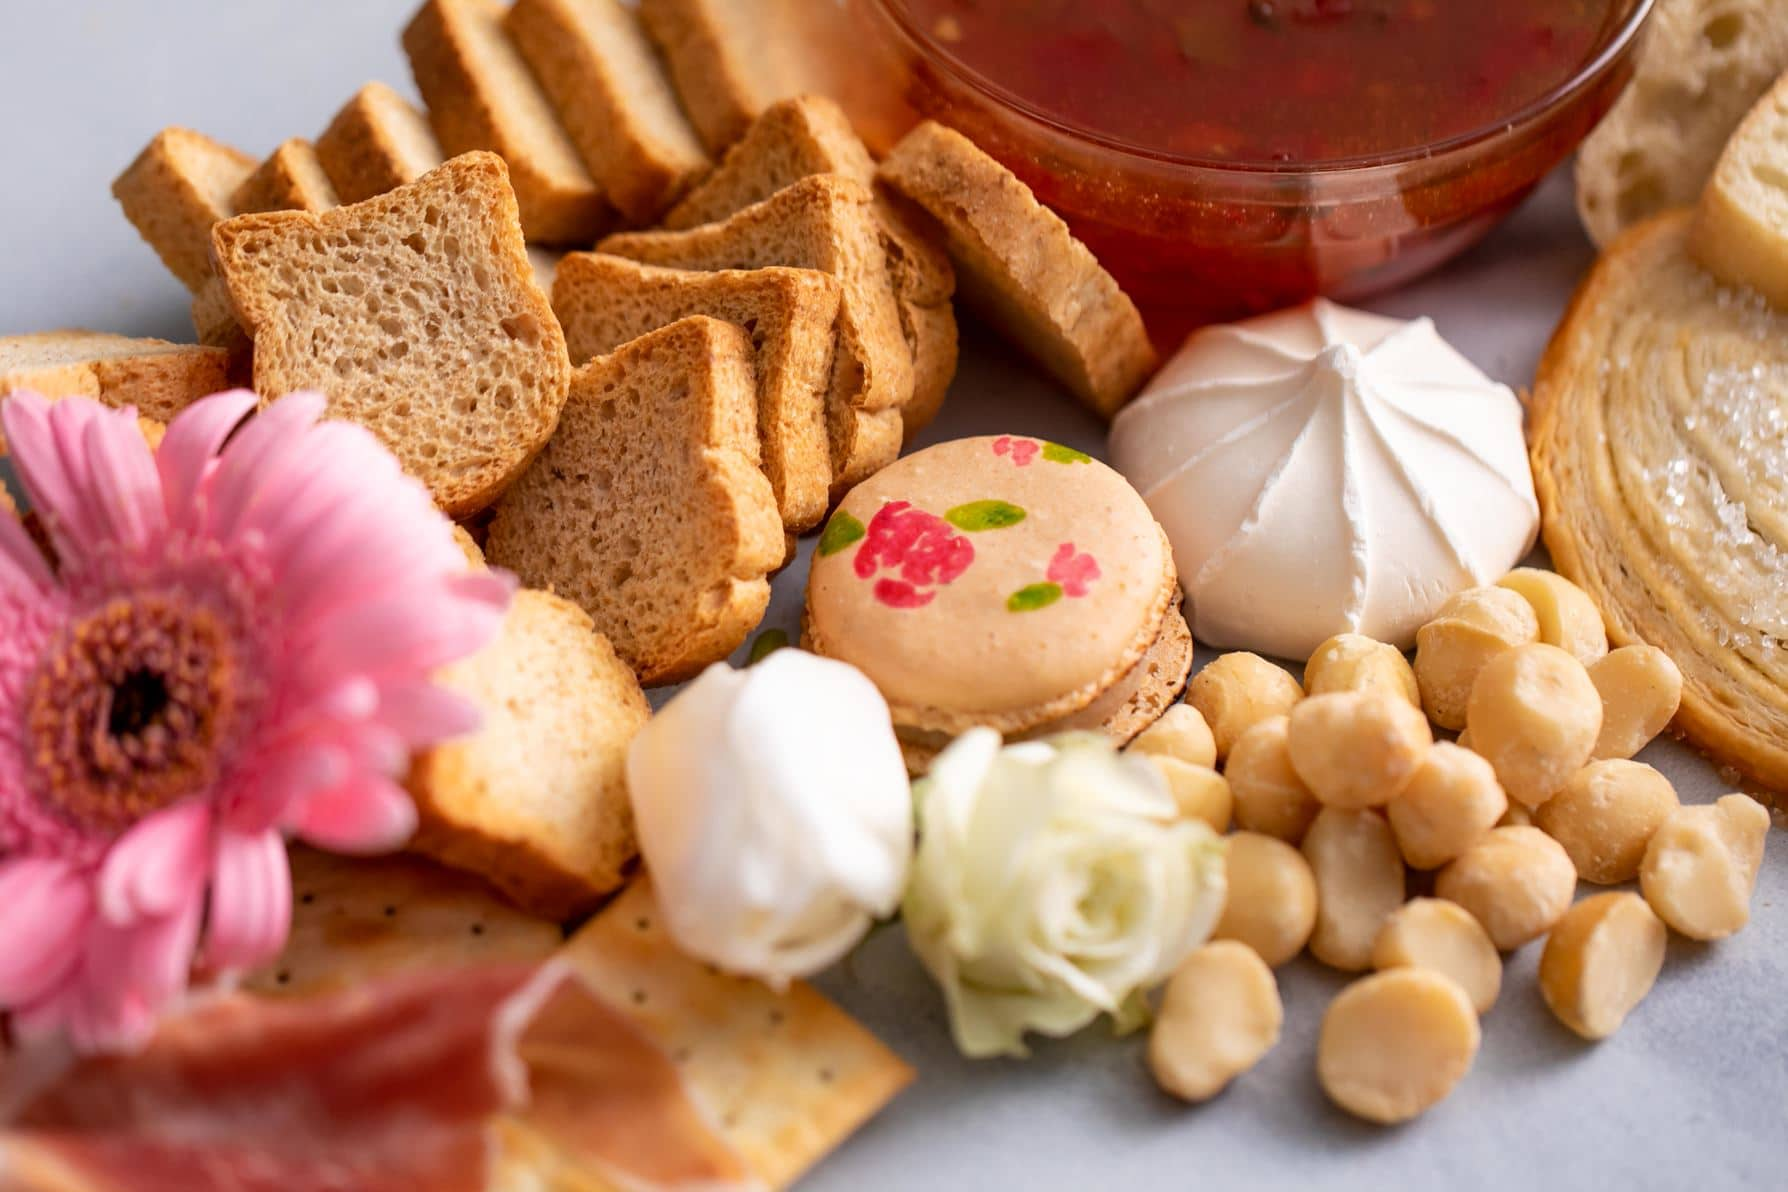 charcuterie board macarons and bread